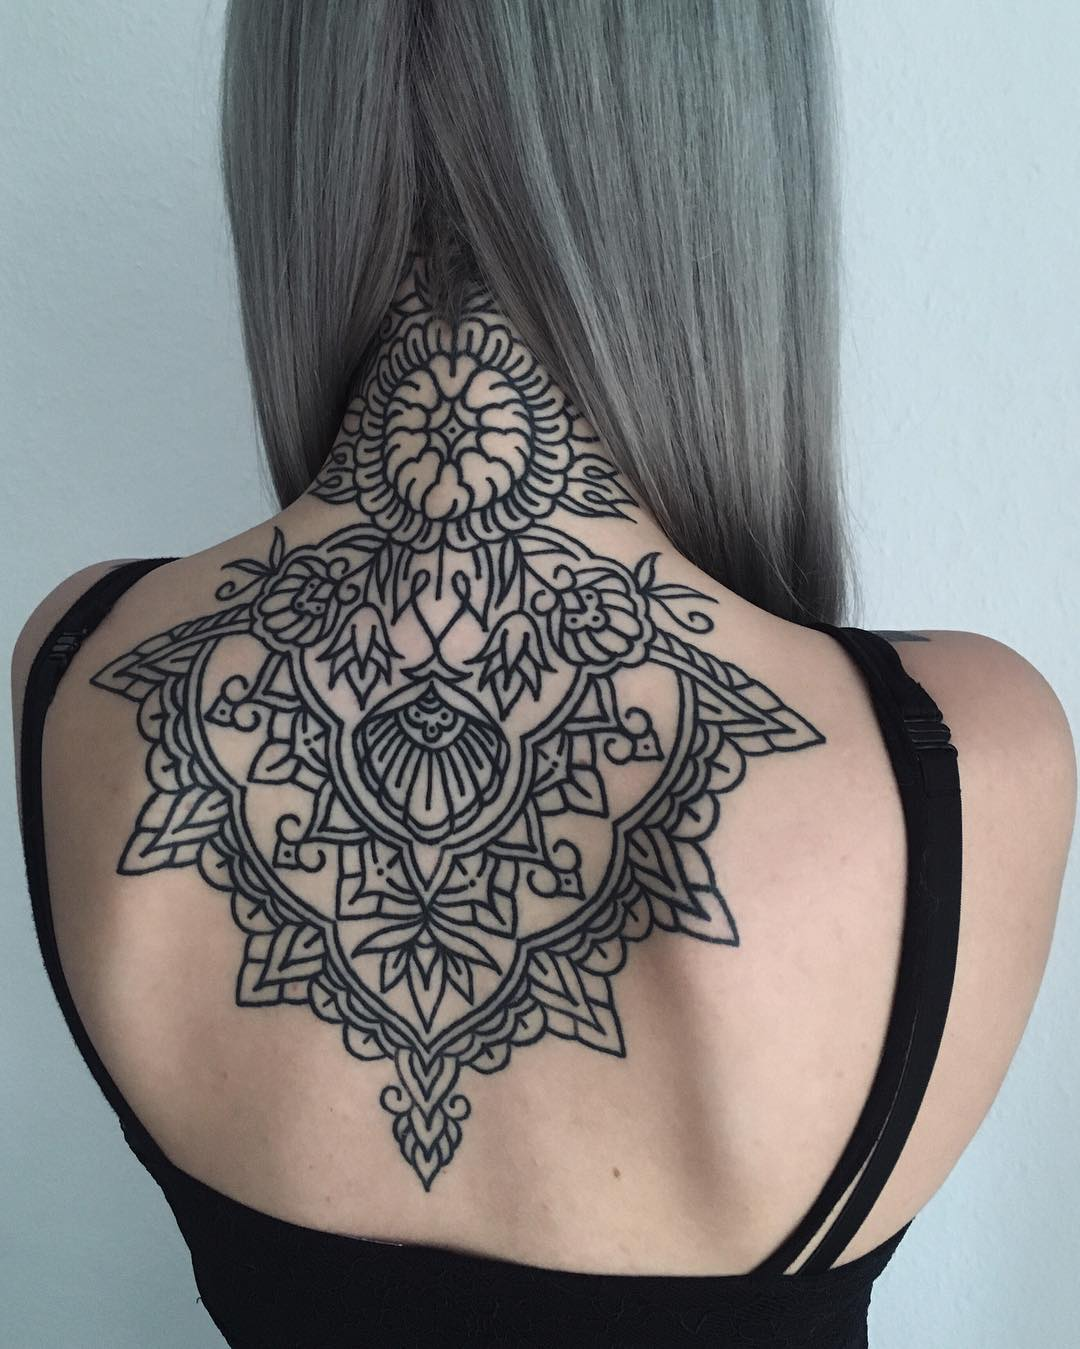 23 Trendy Hip Tattoos That Are Actually Badass: 23 Geometric Tattoos Ideas